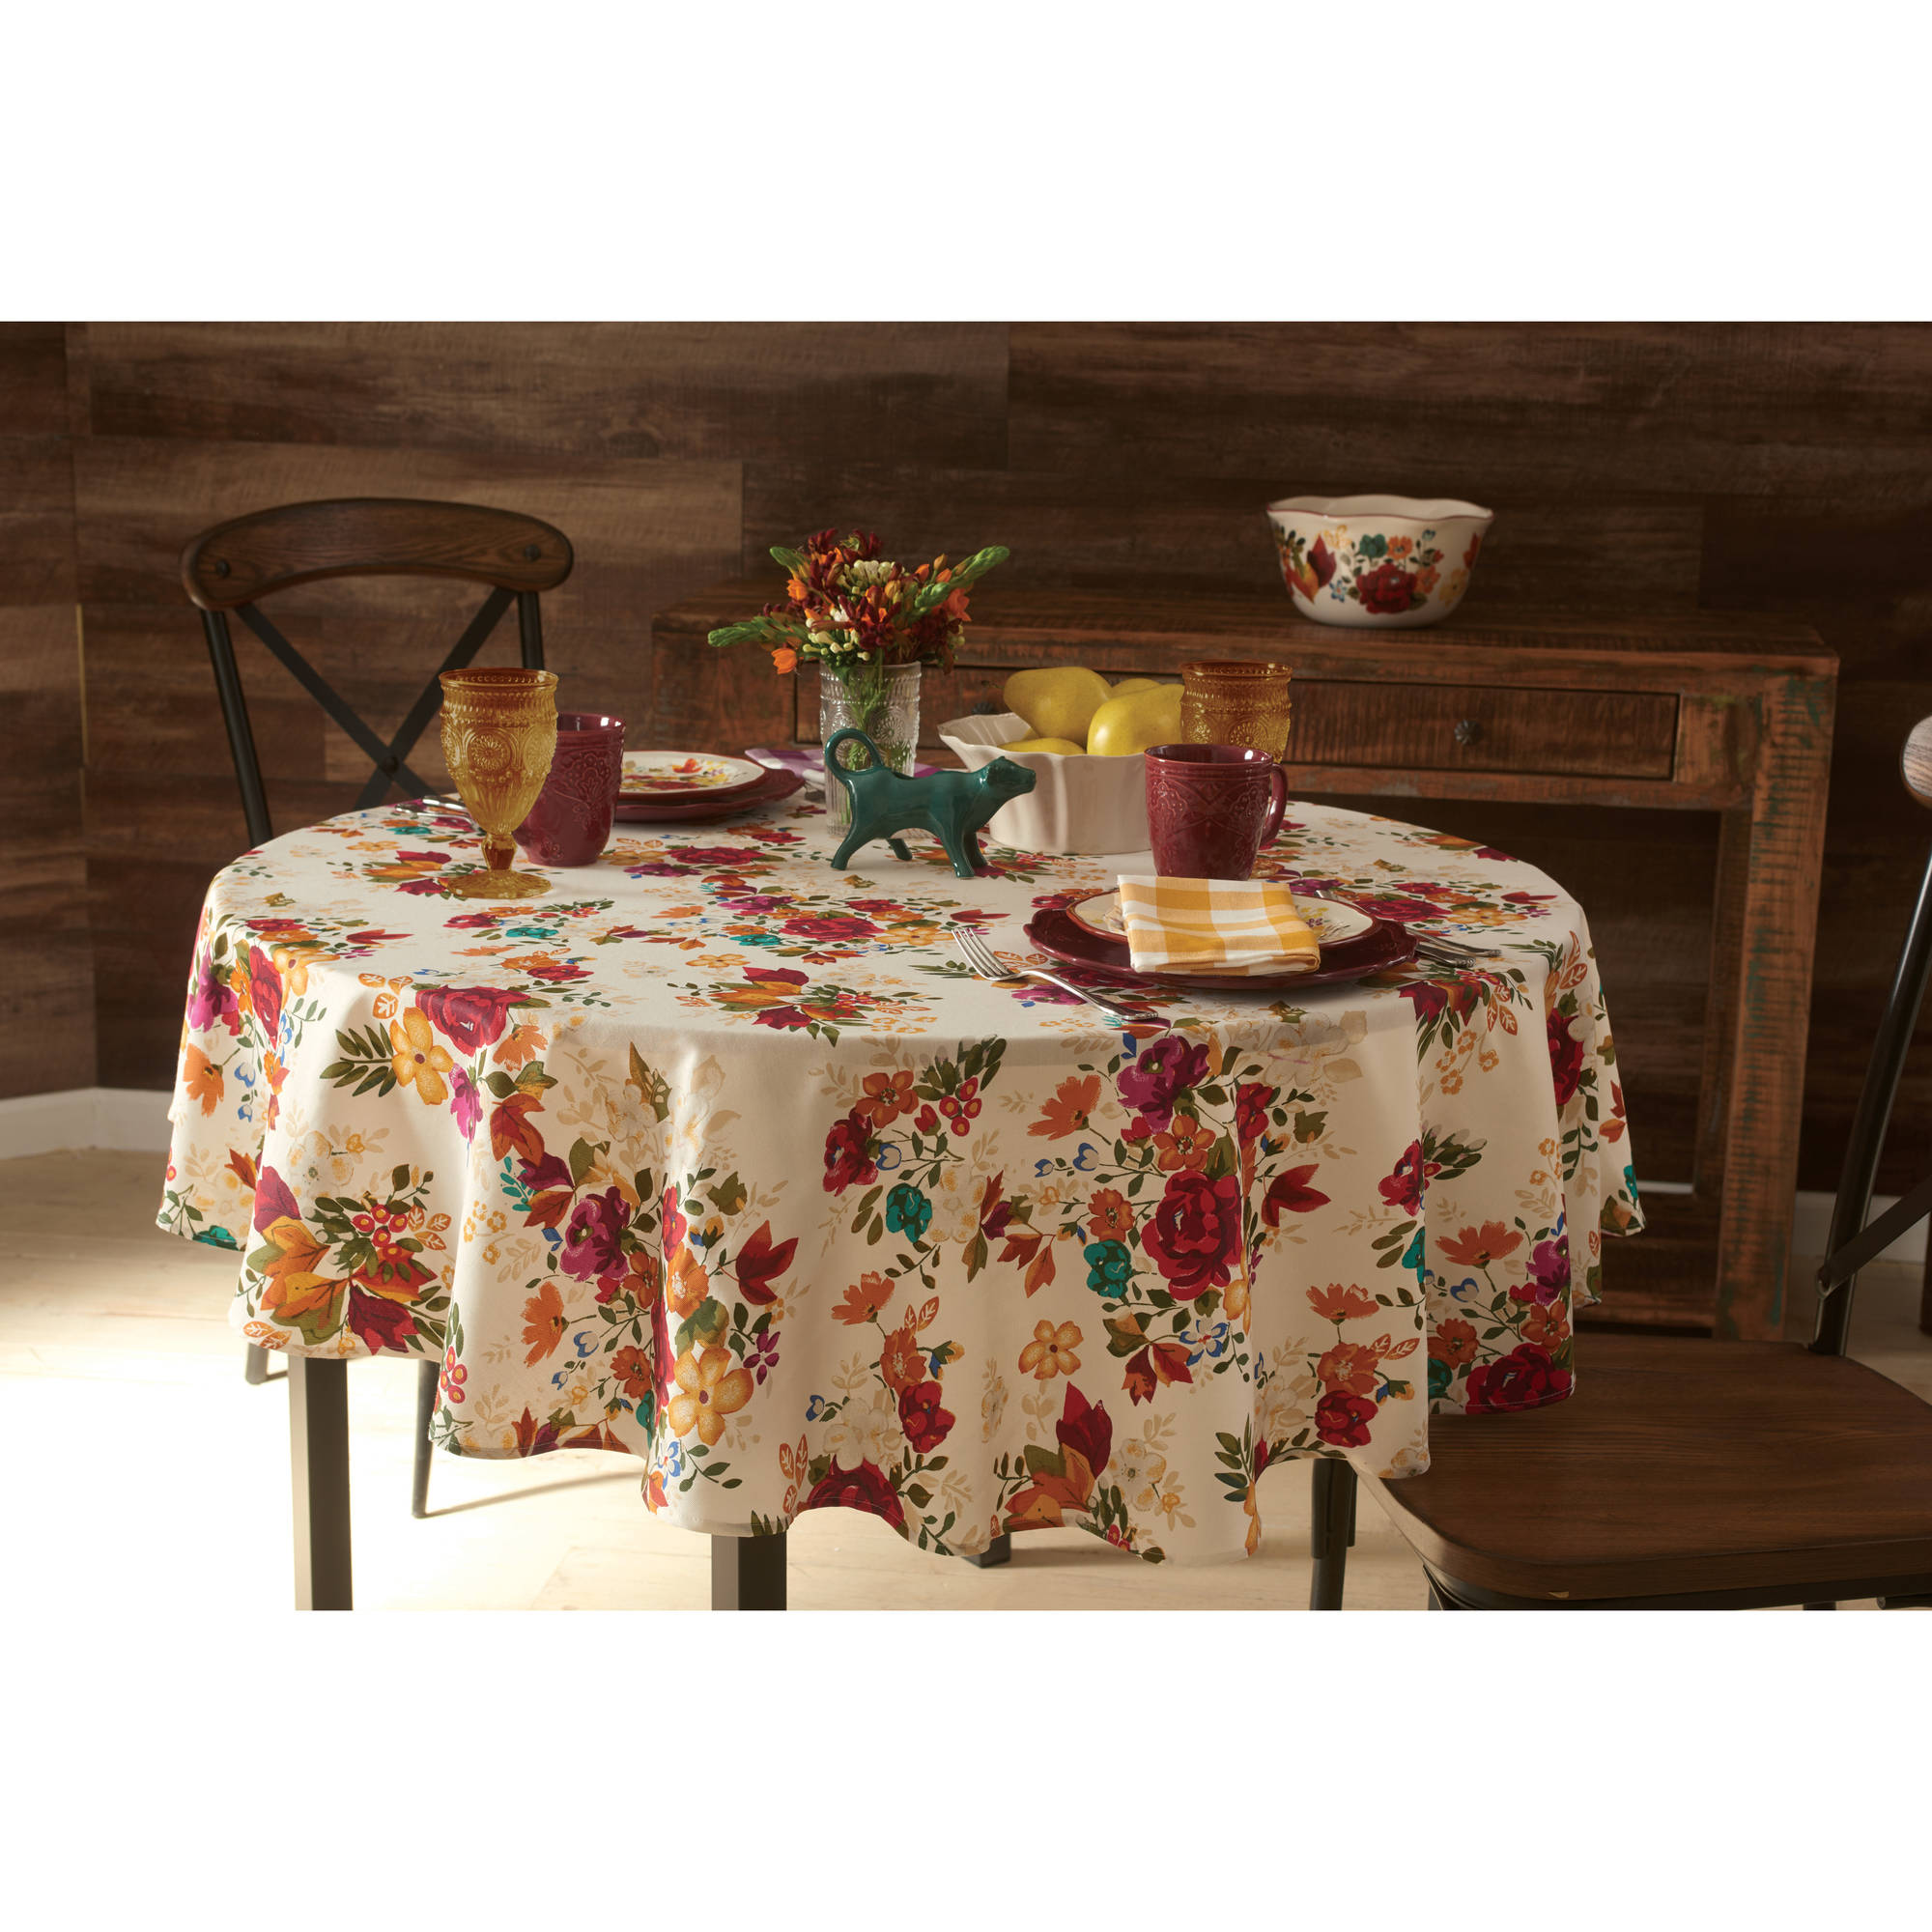 "Pioneer Woman Timeless Floral Tablecloth, 70"" Round"